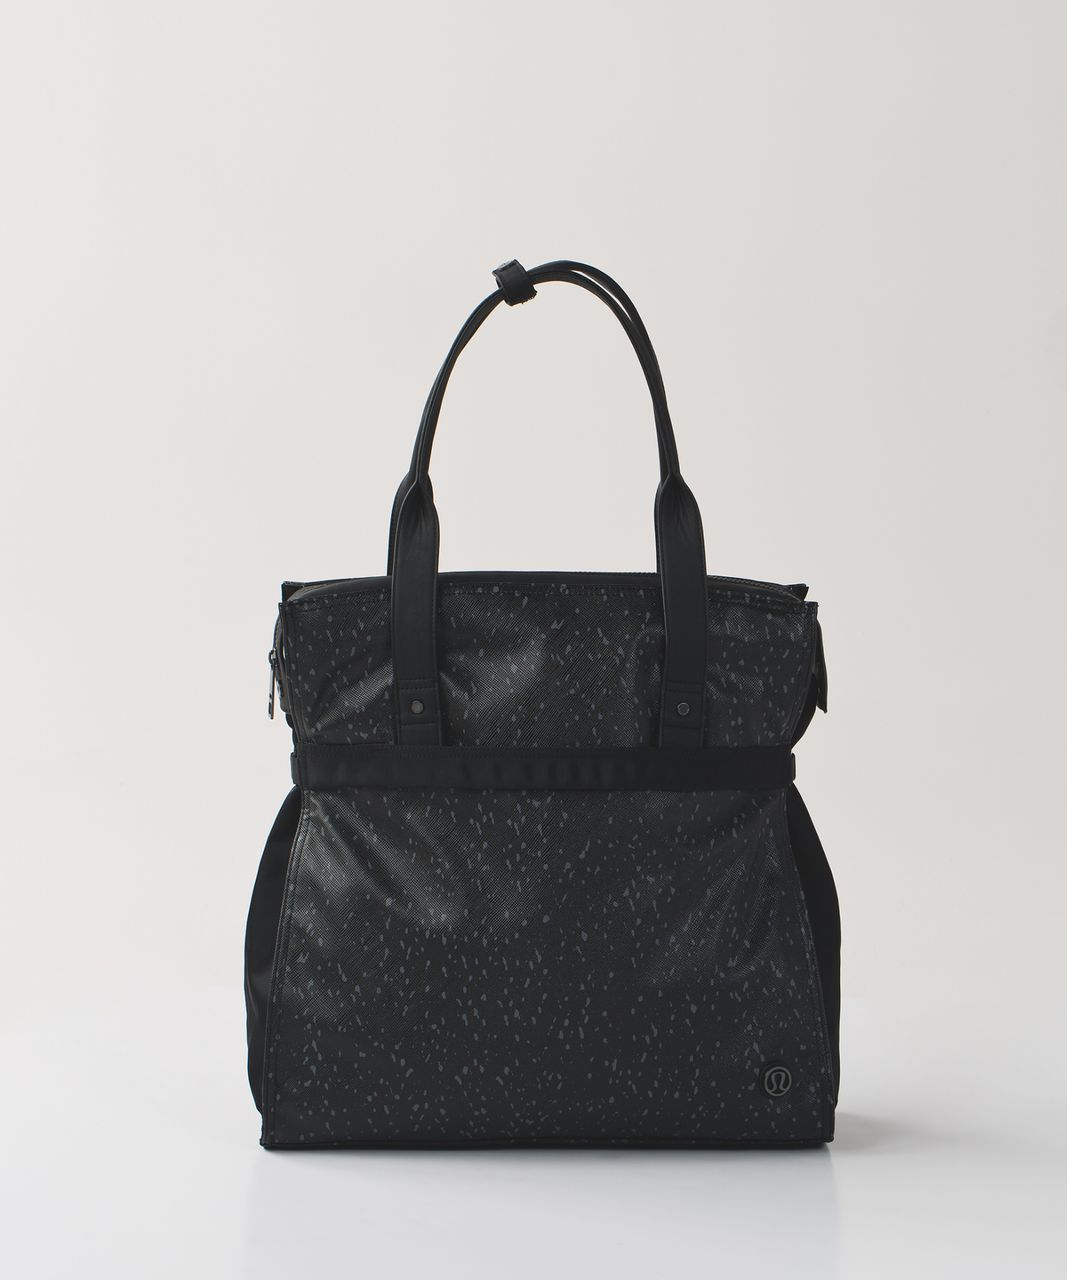 Lululemon Follow Your Bliss Bag - Exploded Butterfly Texture Dark Slate Black / Black